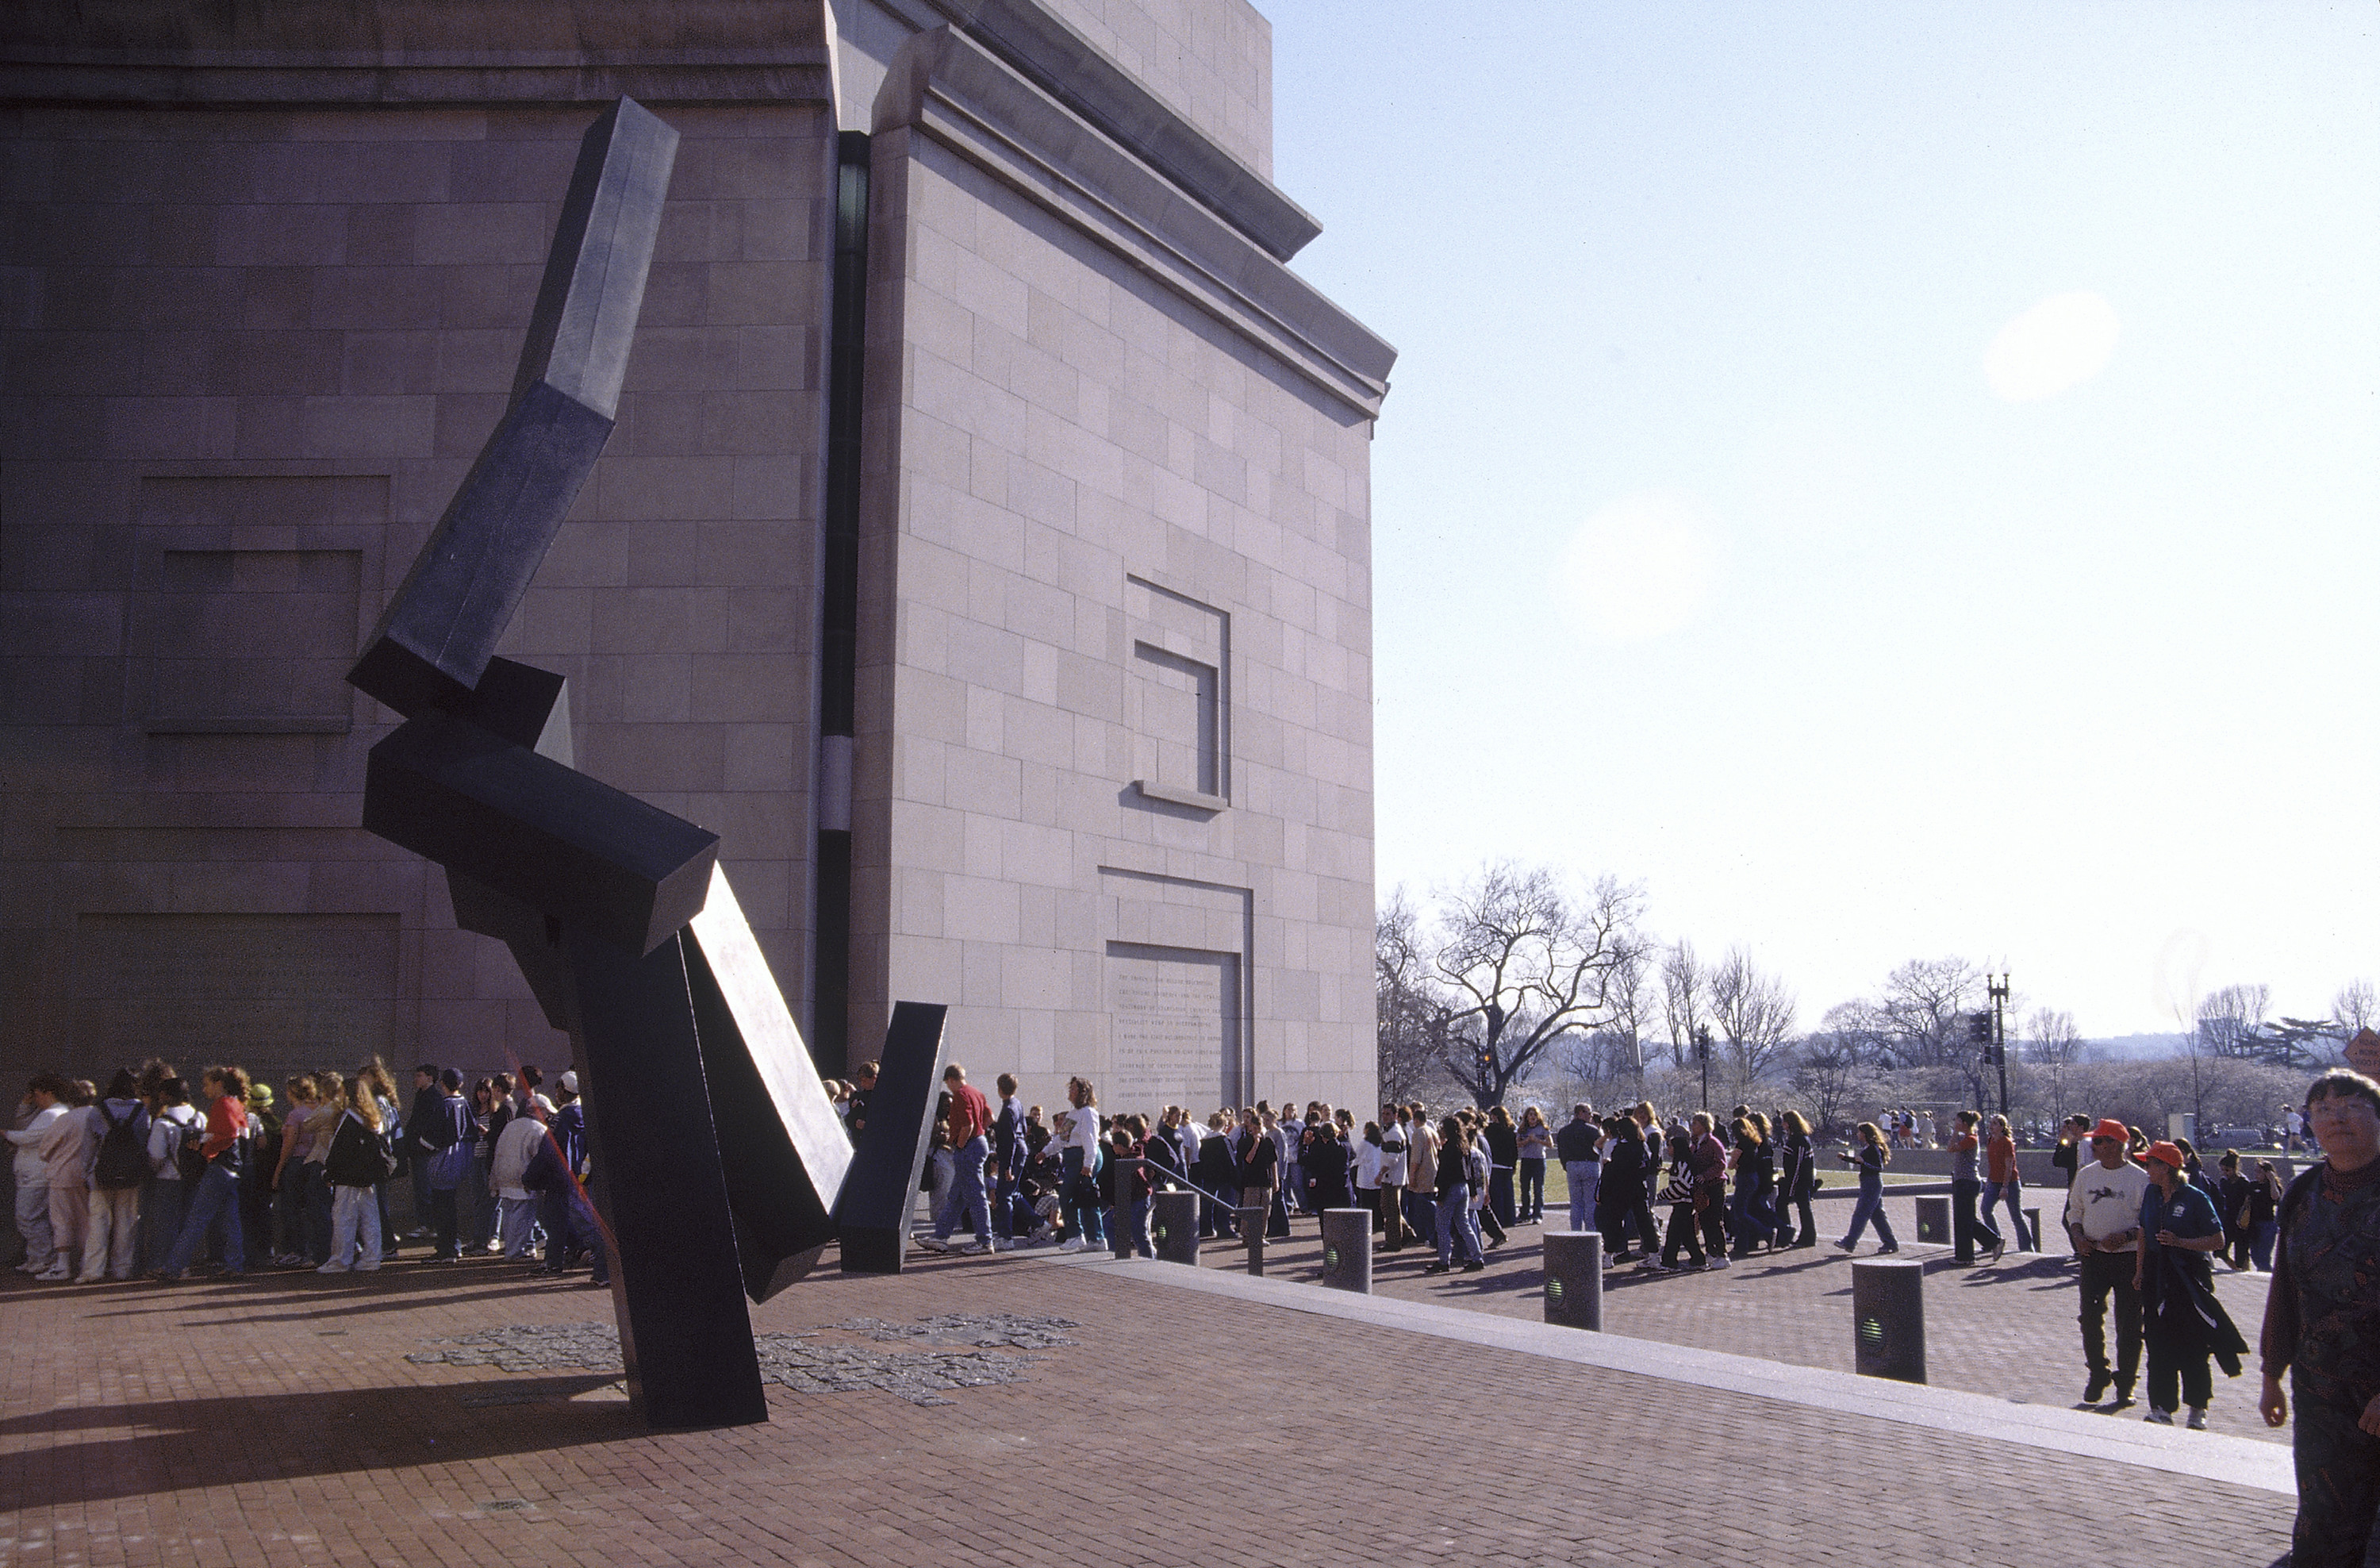 Visitors get into line at the 15th Street entrance to the U.S. Holocaust Memorial Museum.